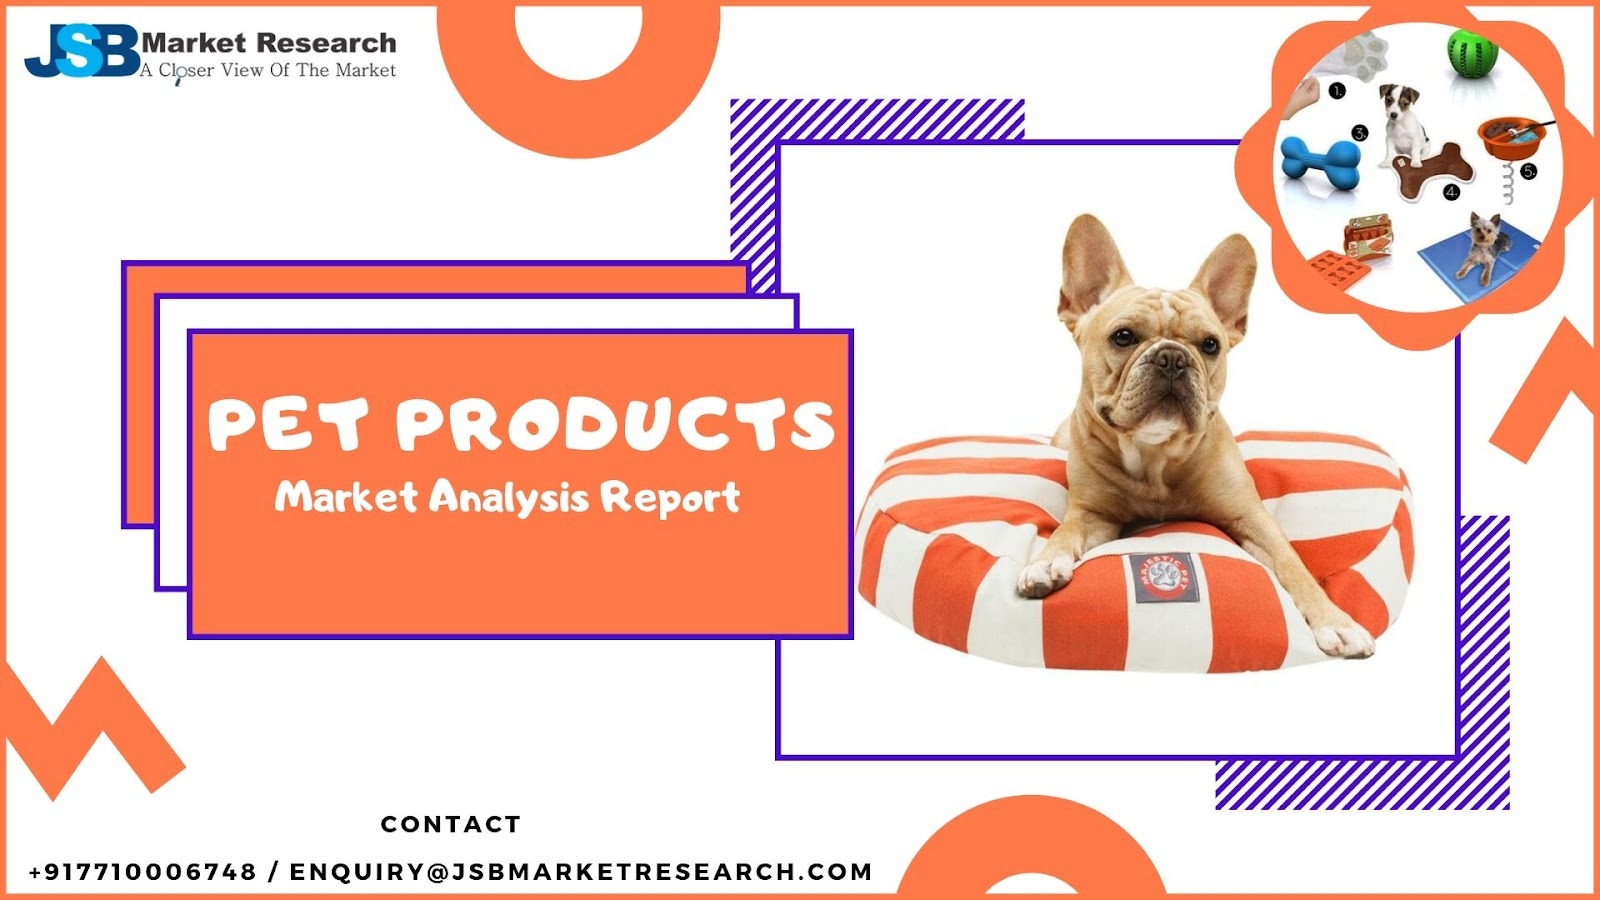 Pet Products Market Research Report